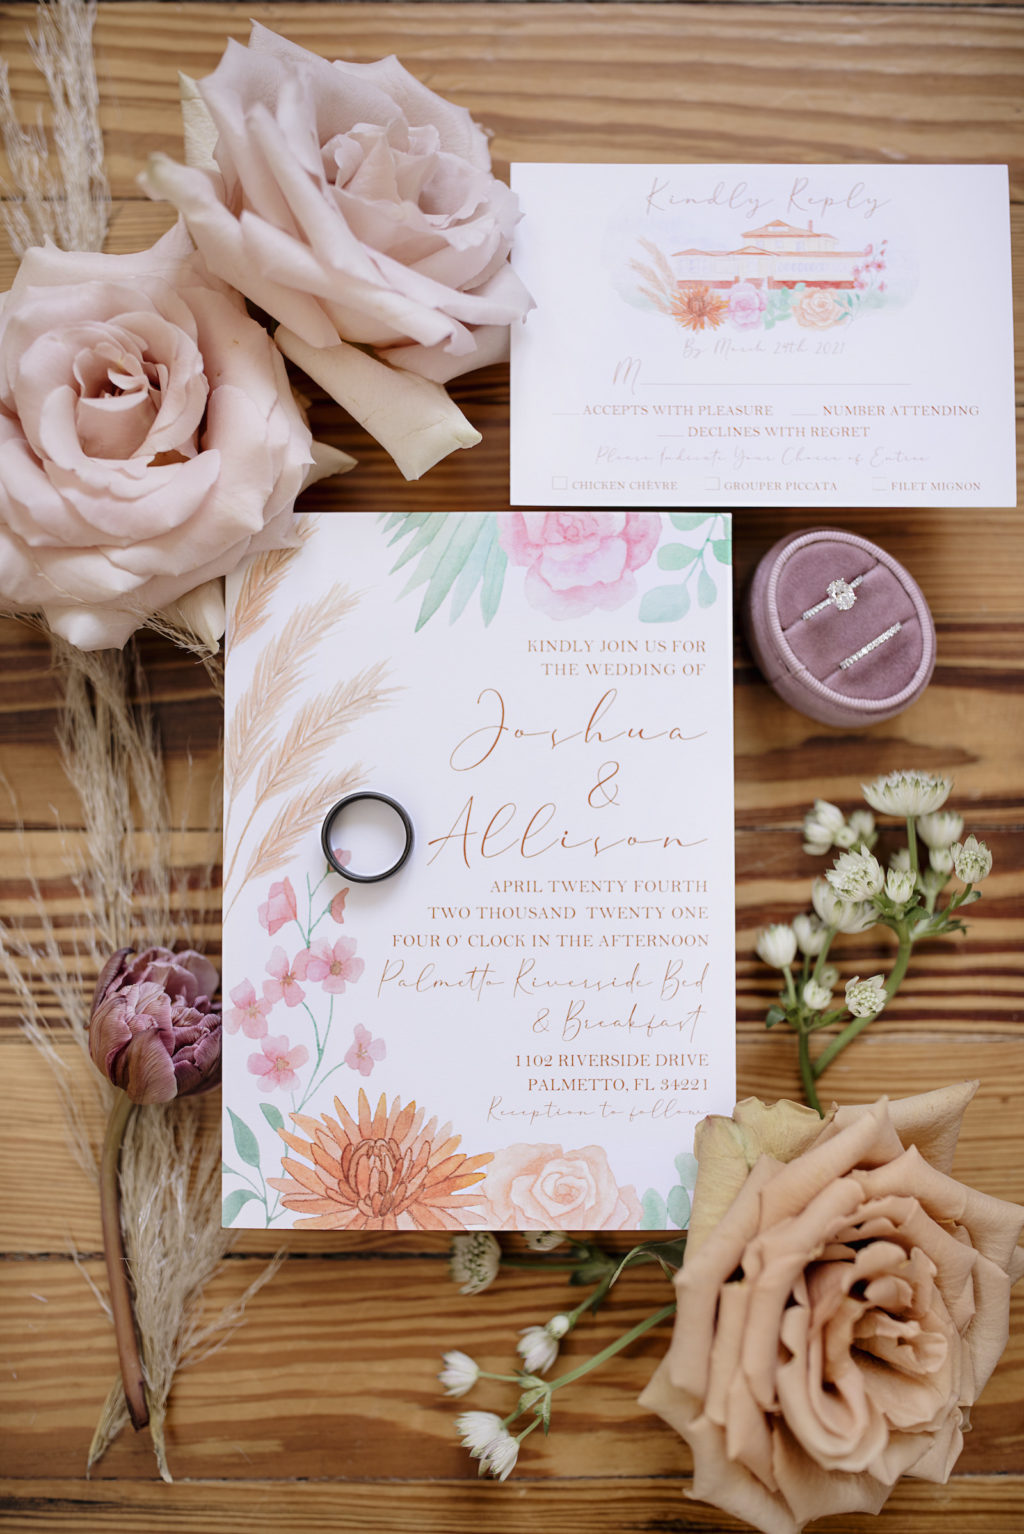 Floral Orange Blue and Pink Boho Inspired Wedding Invitations   Wedding Band on Wedding Invitation with Engagement Ring Box